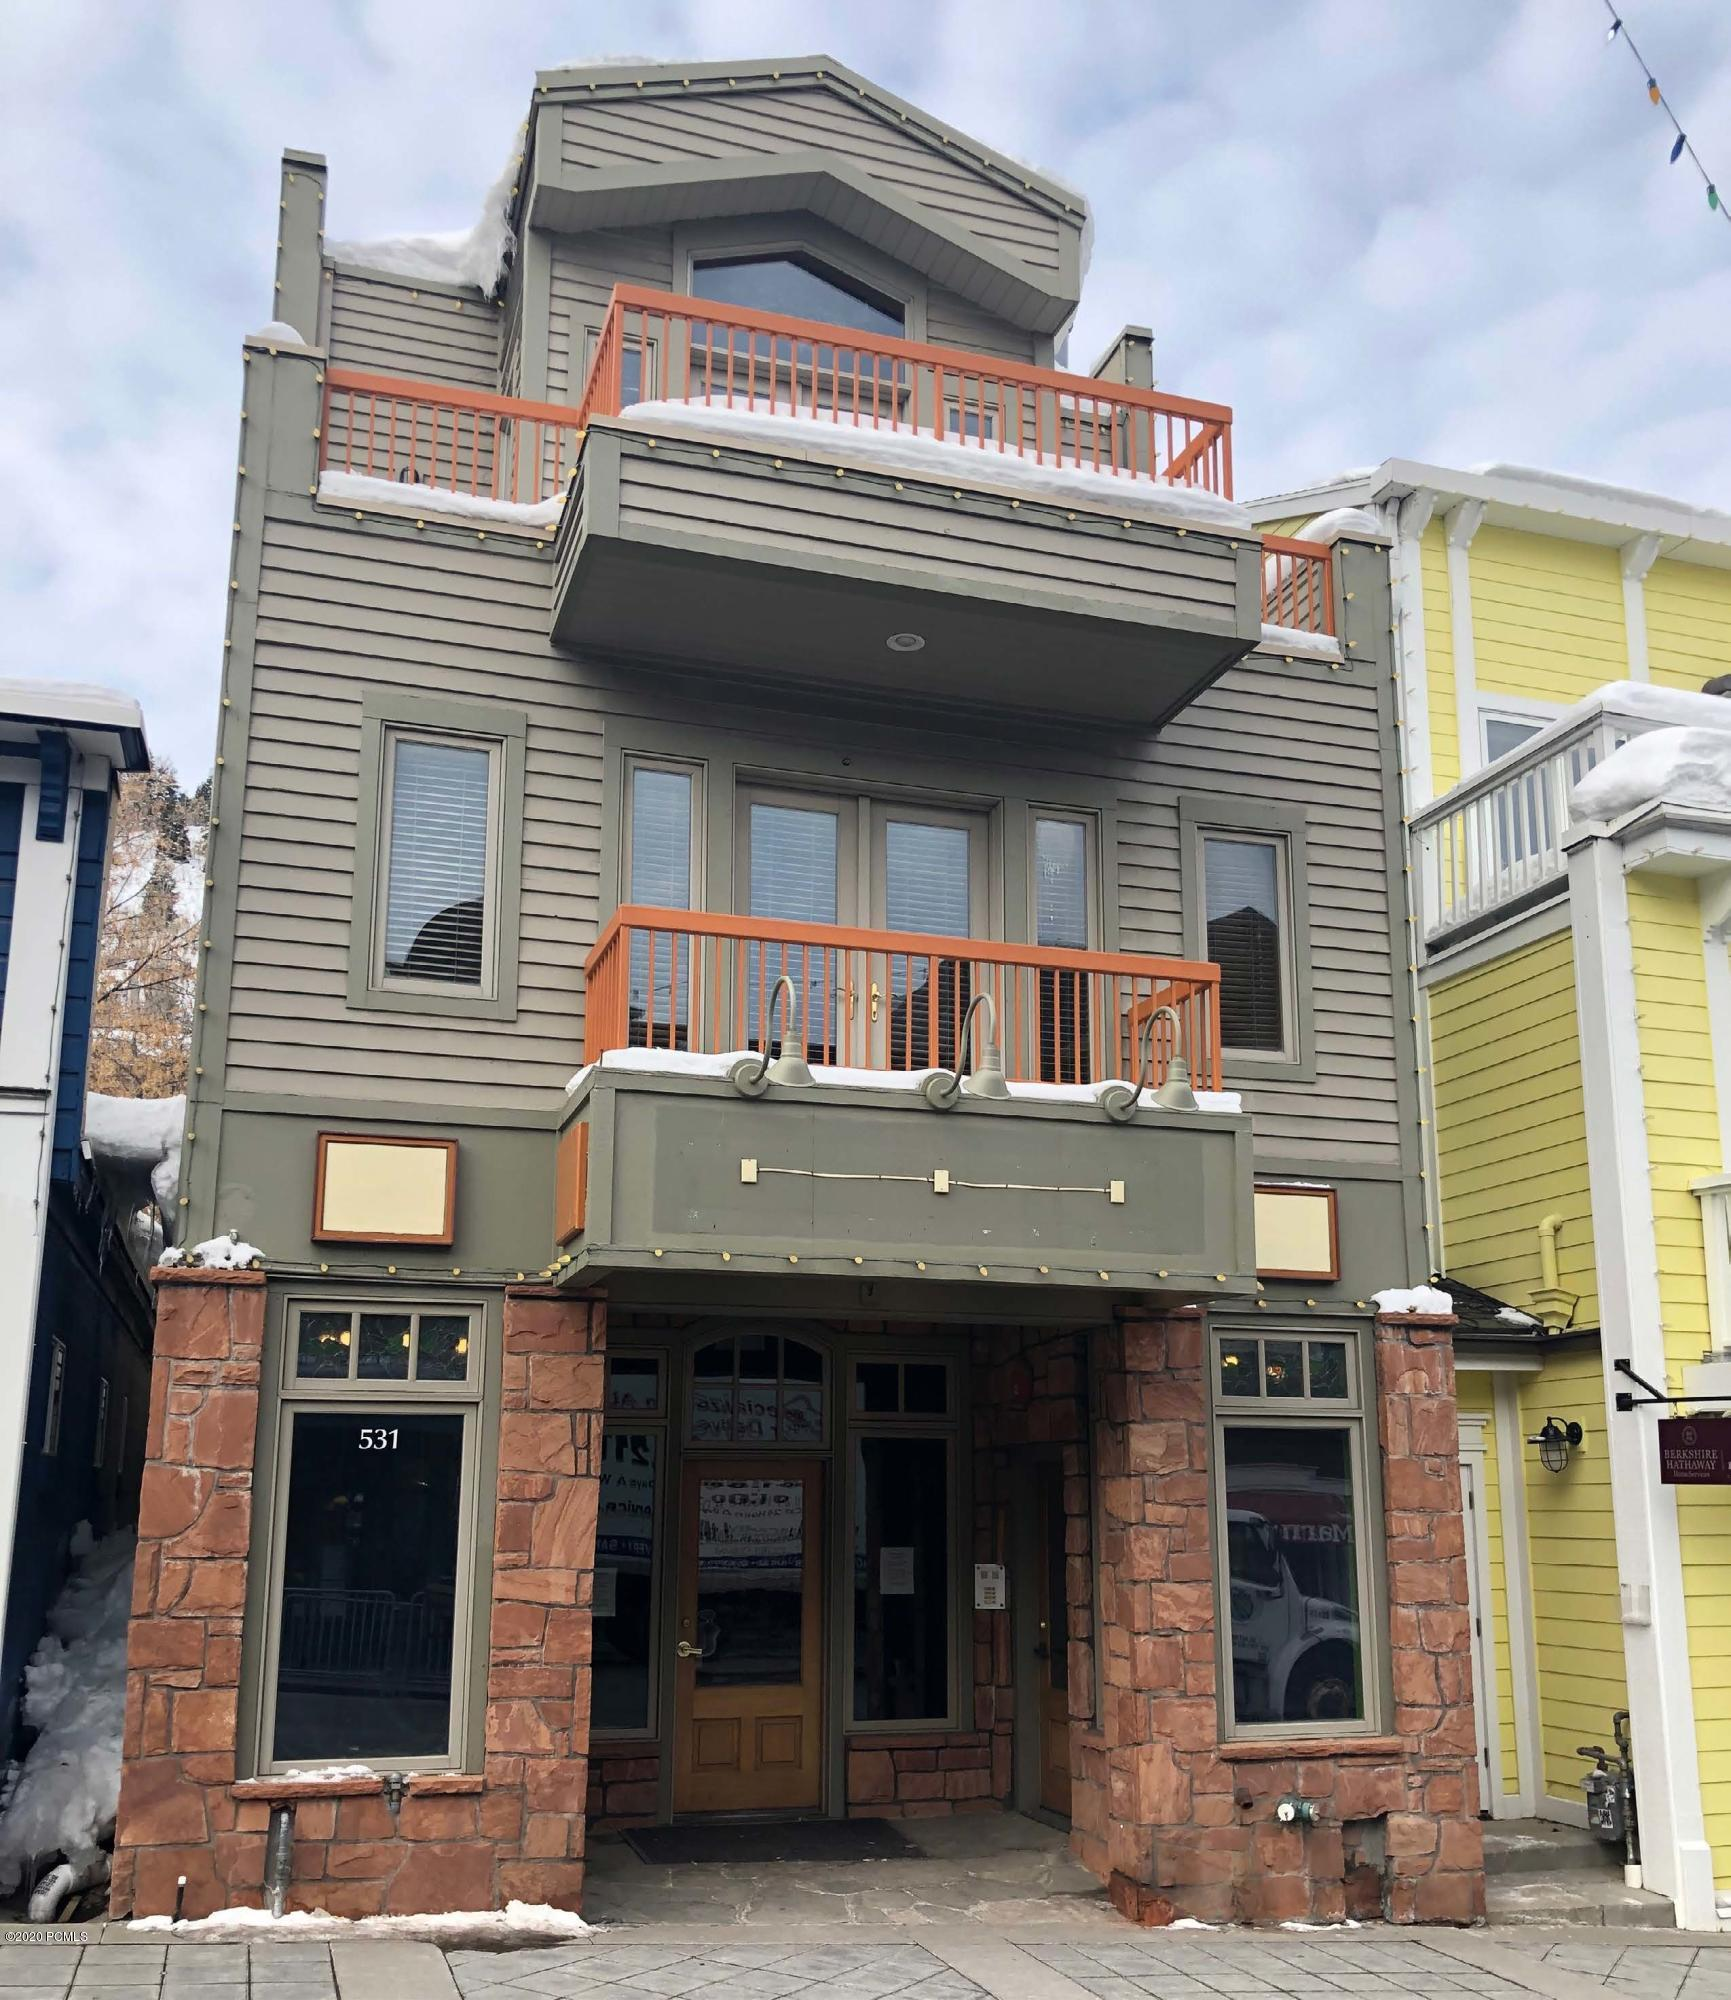 531 Main Street, Park City, Utah 84060, ,Commercial,For Sale,Main Street,20190109112430415765000000